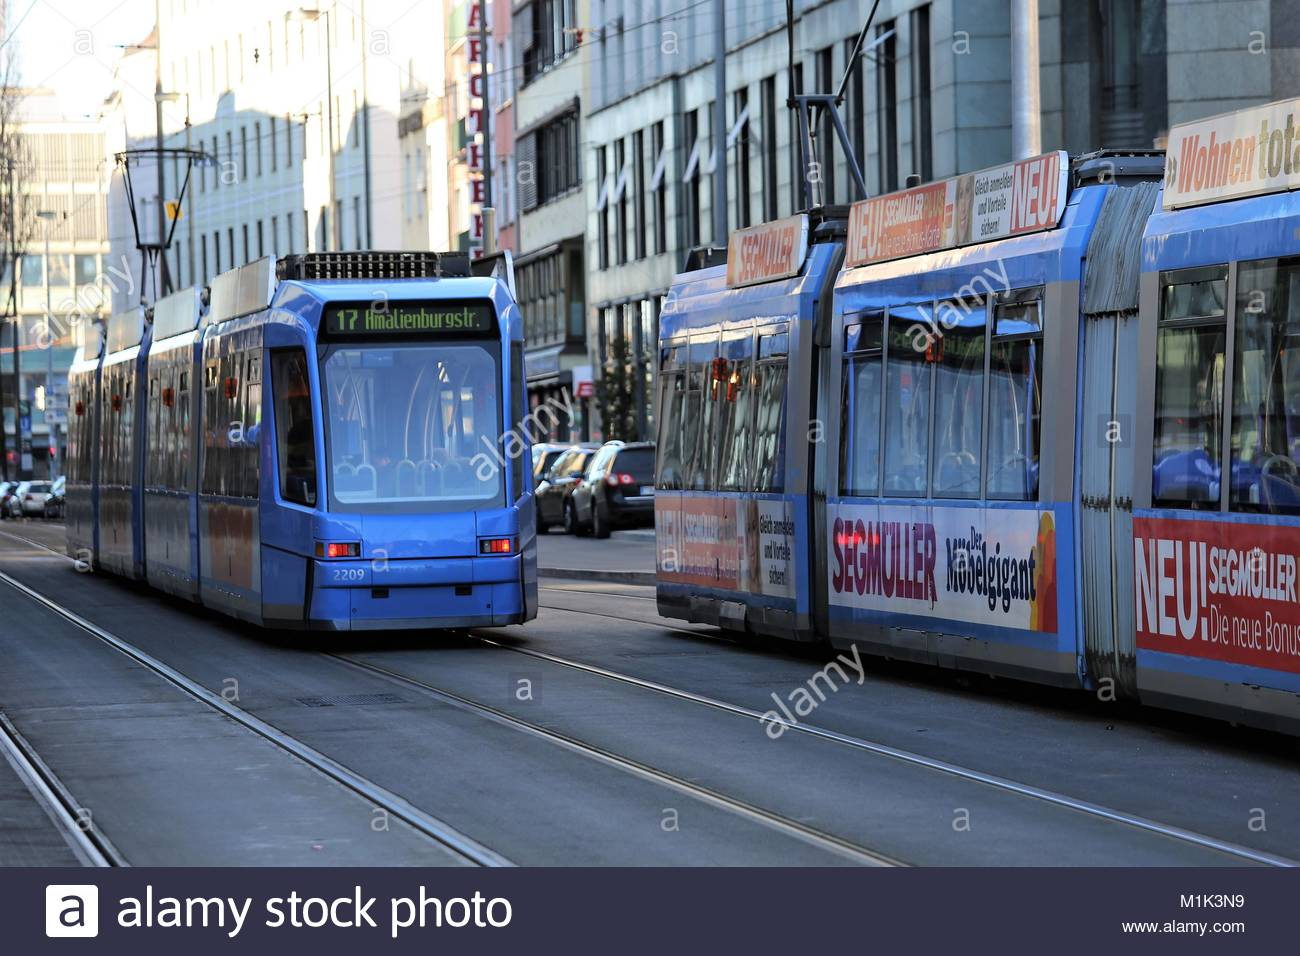 public transport munich stock photos public transport. Black Bedroom Furniture Sets. Home Design Ideas